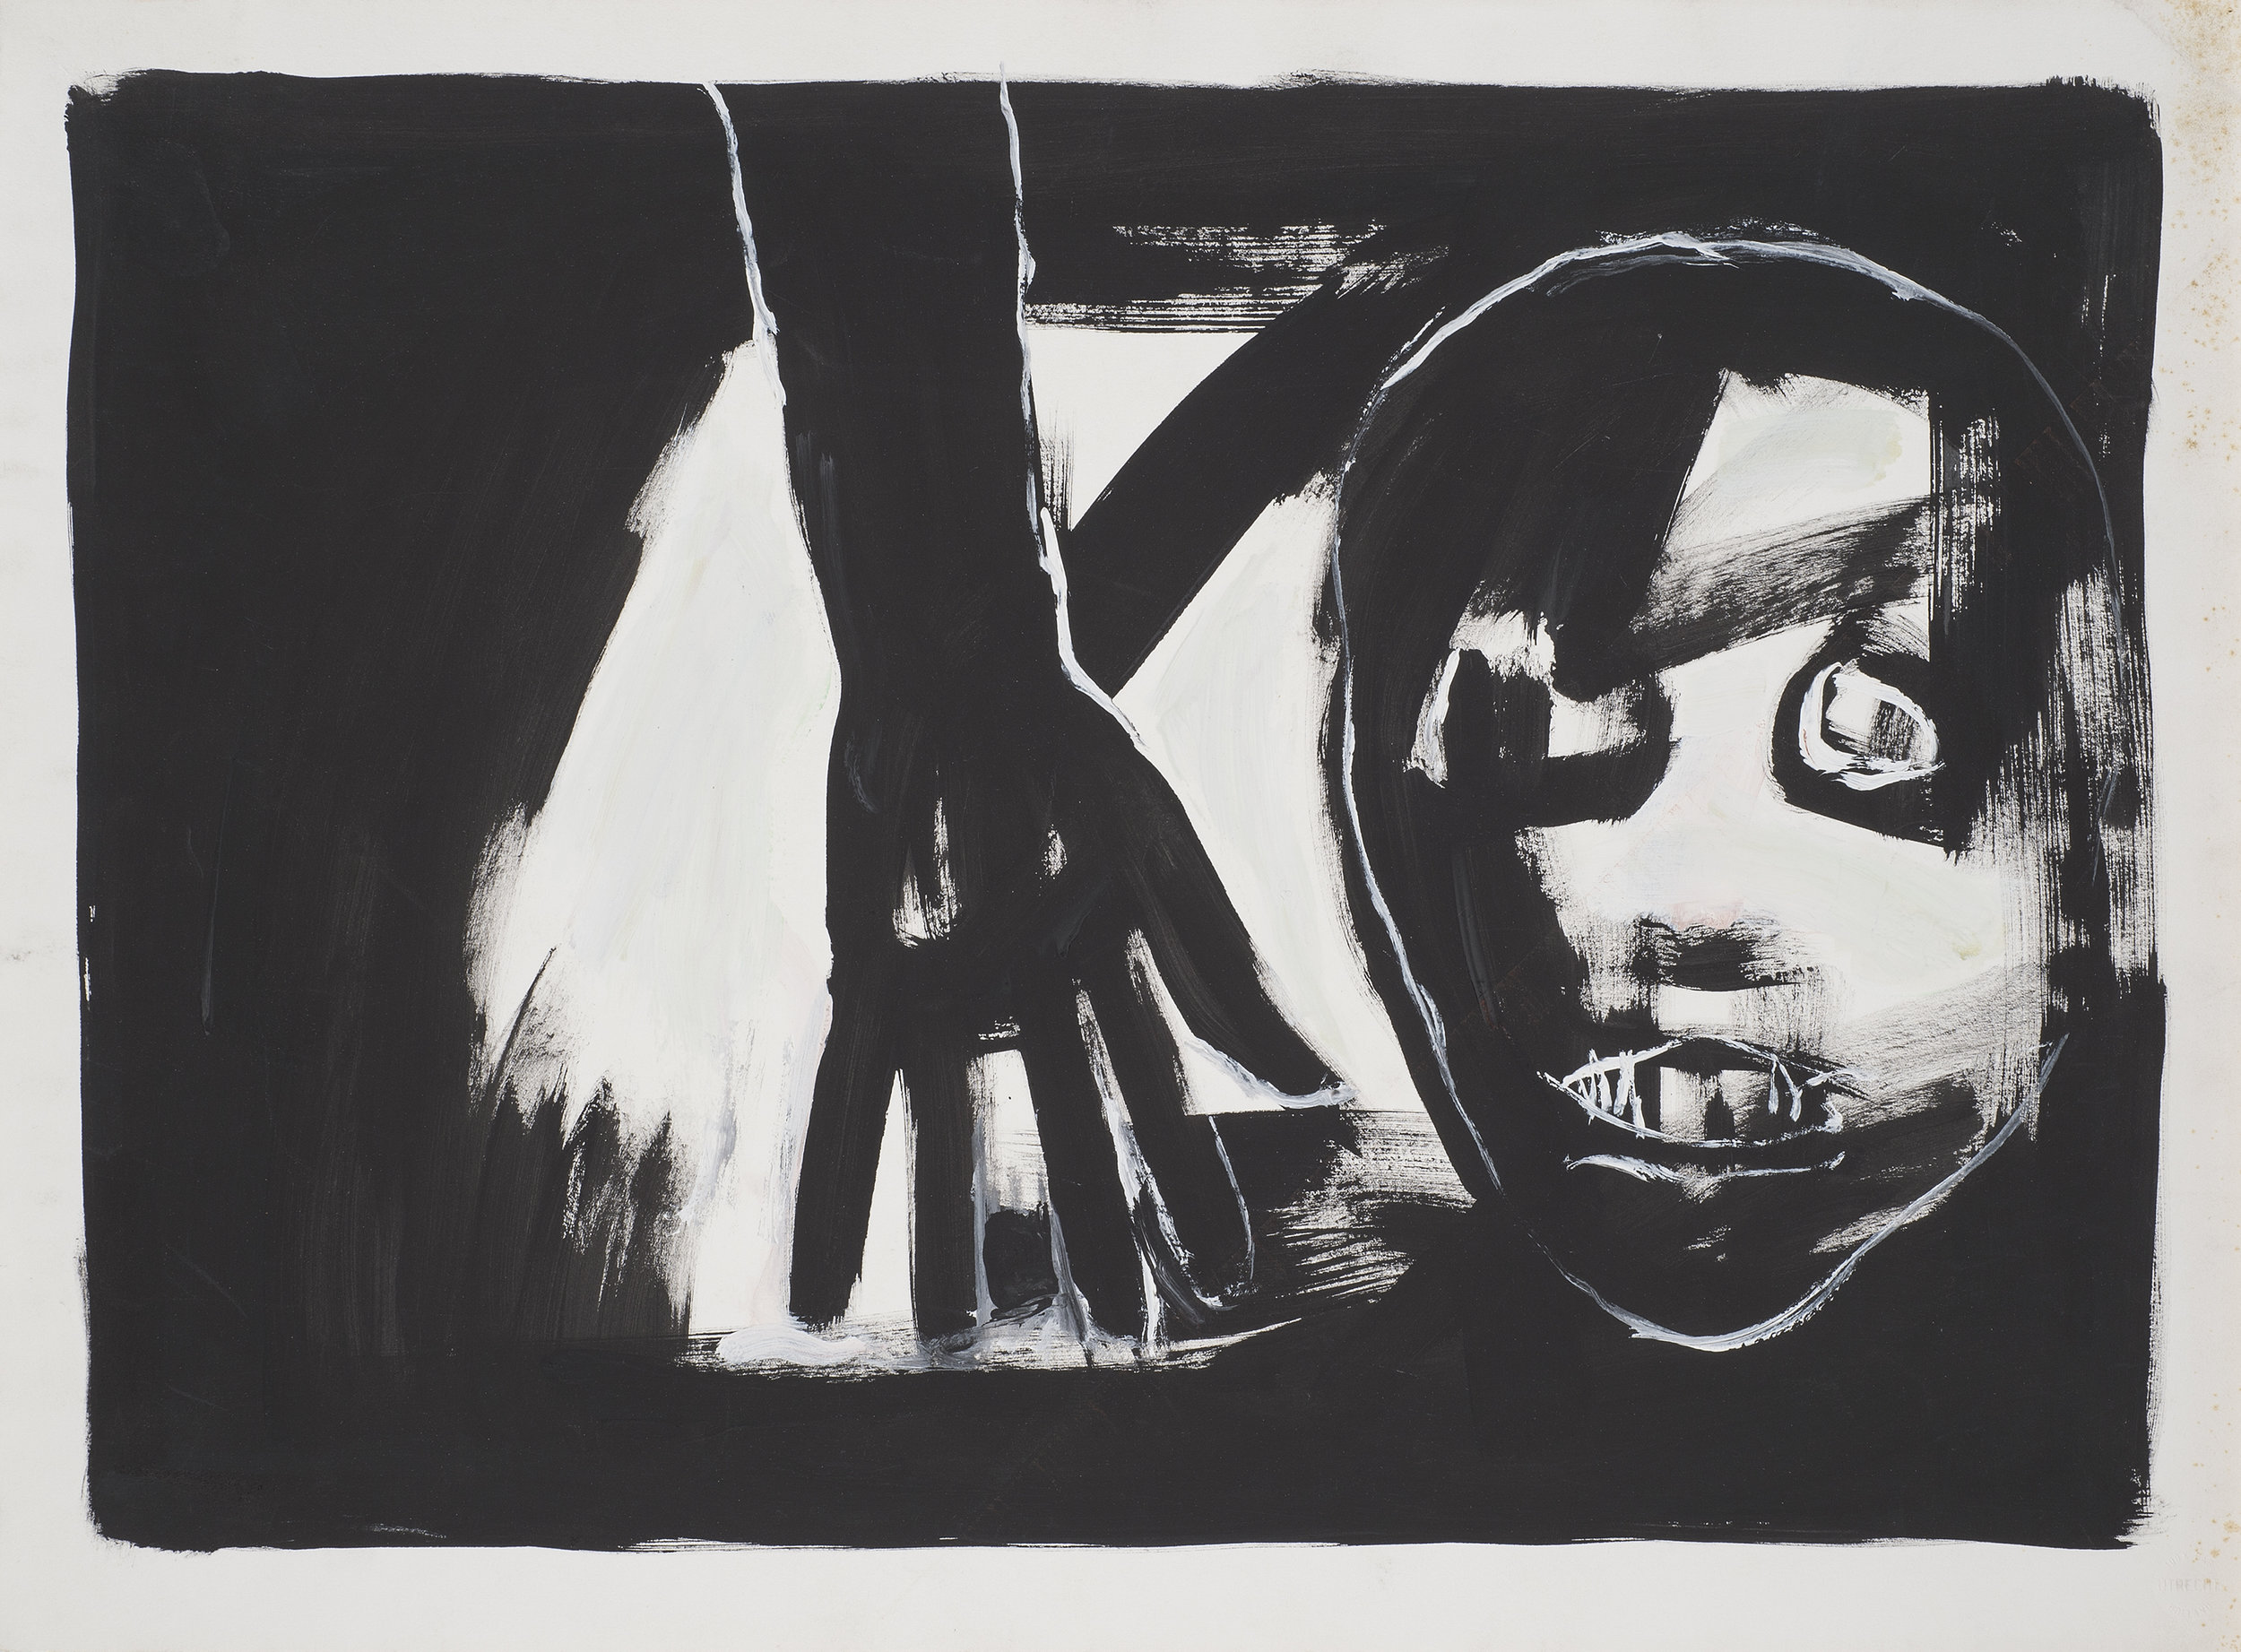 Untitled , 1986. Acrylic on paper, 30 x 22 in. (76.2 x 56 cm.)